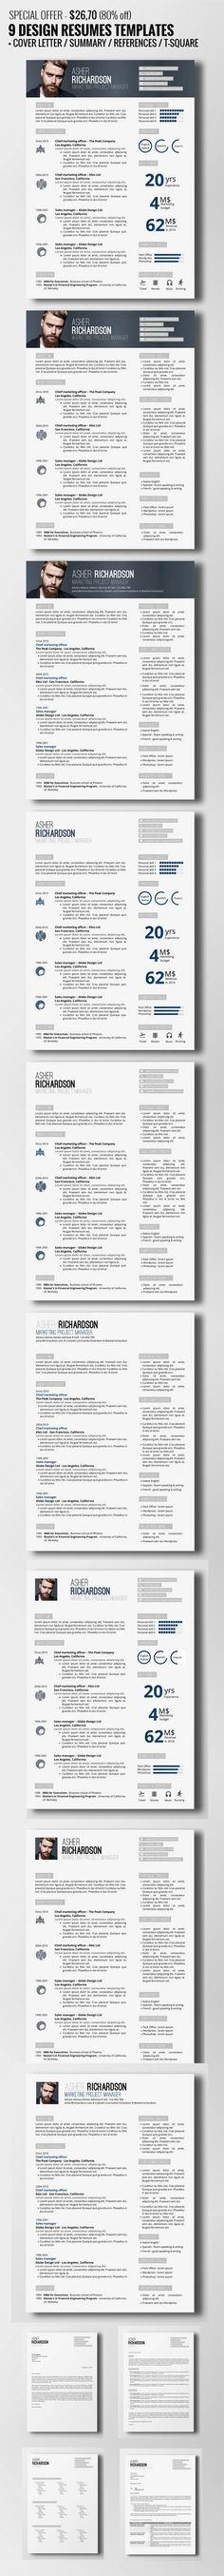 435 best Resume images on Pinterest Resume design, Design resume - different resume styles